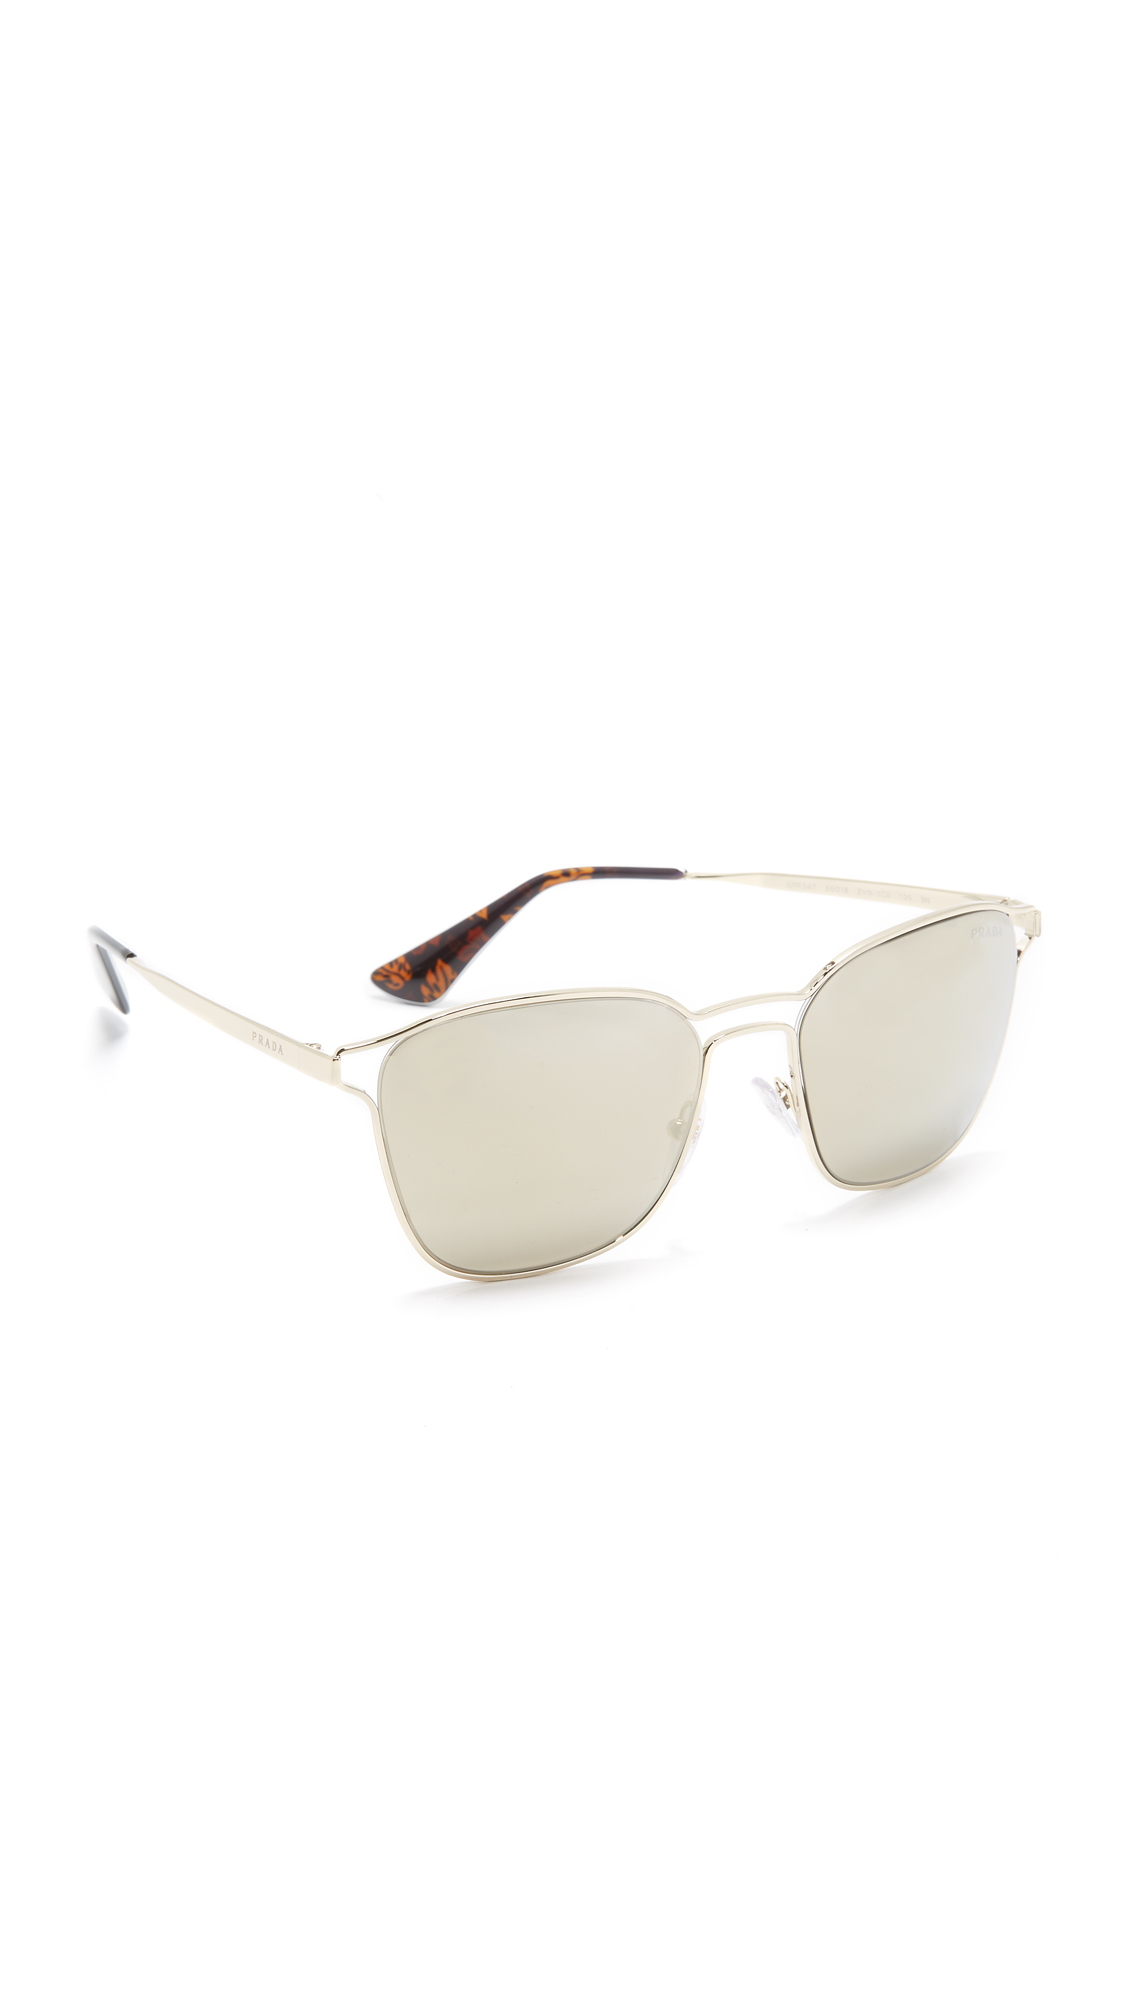 Prada Double Bridge Mirrored Sunglasses - Pale Gold/Light Brown at Shopbop